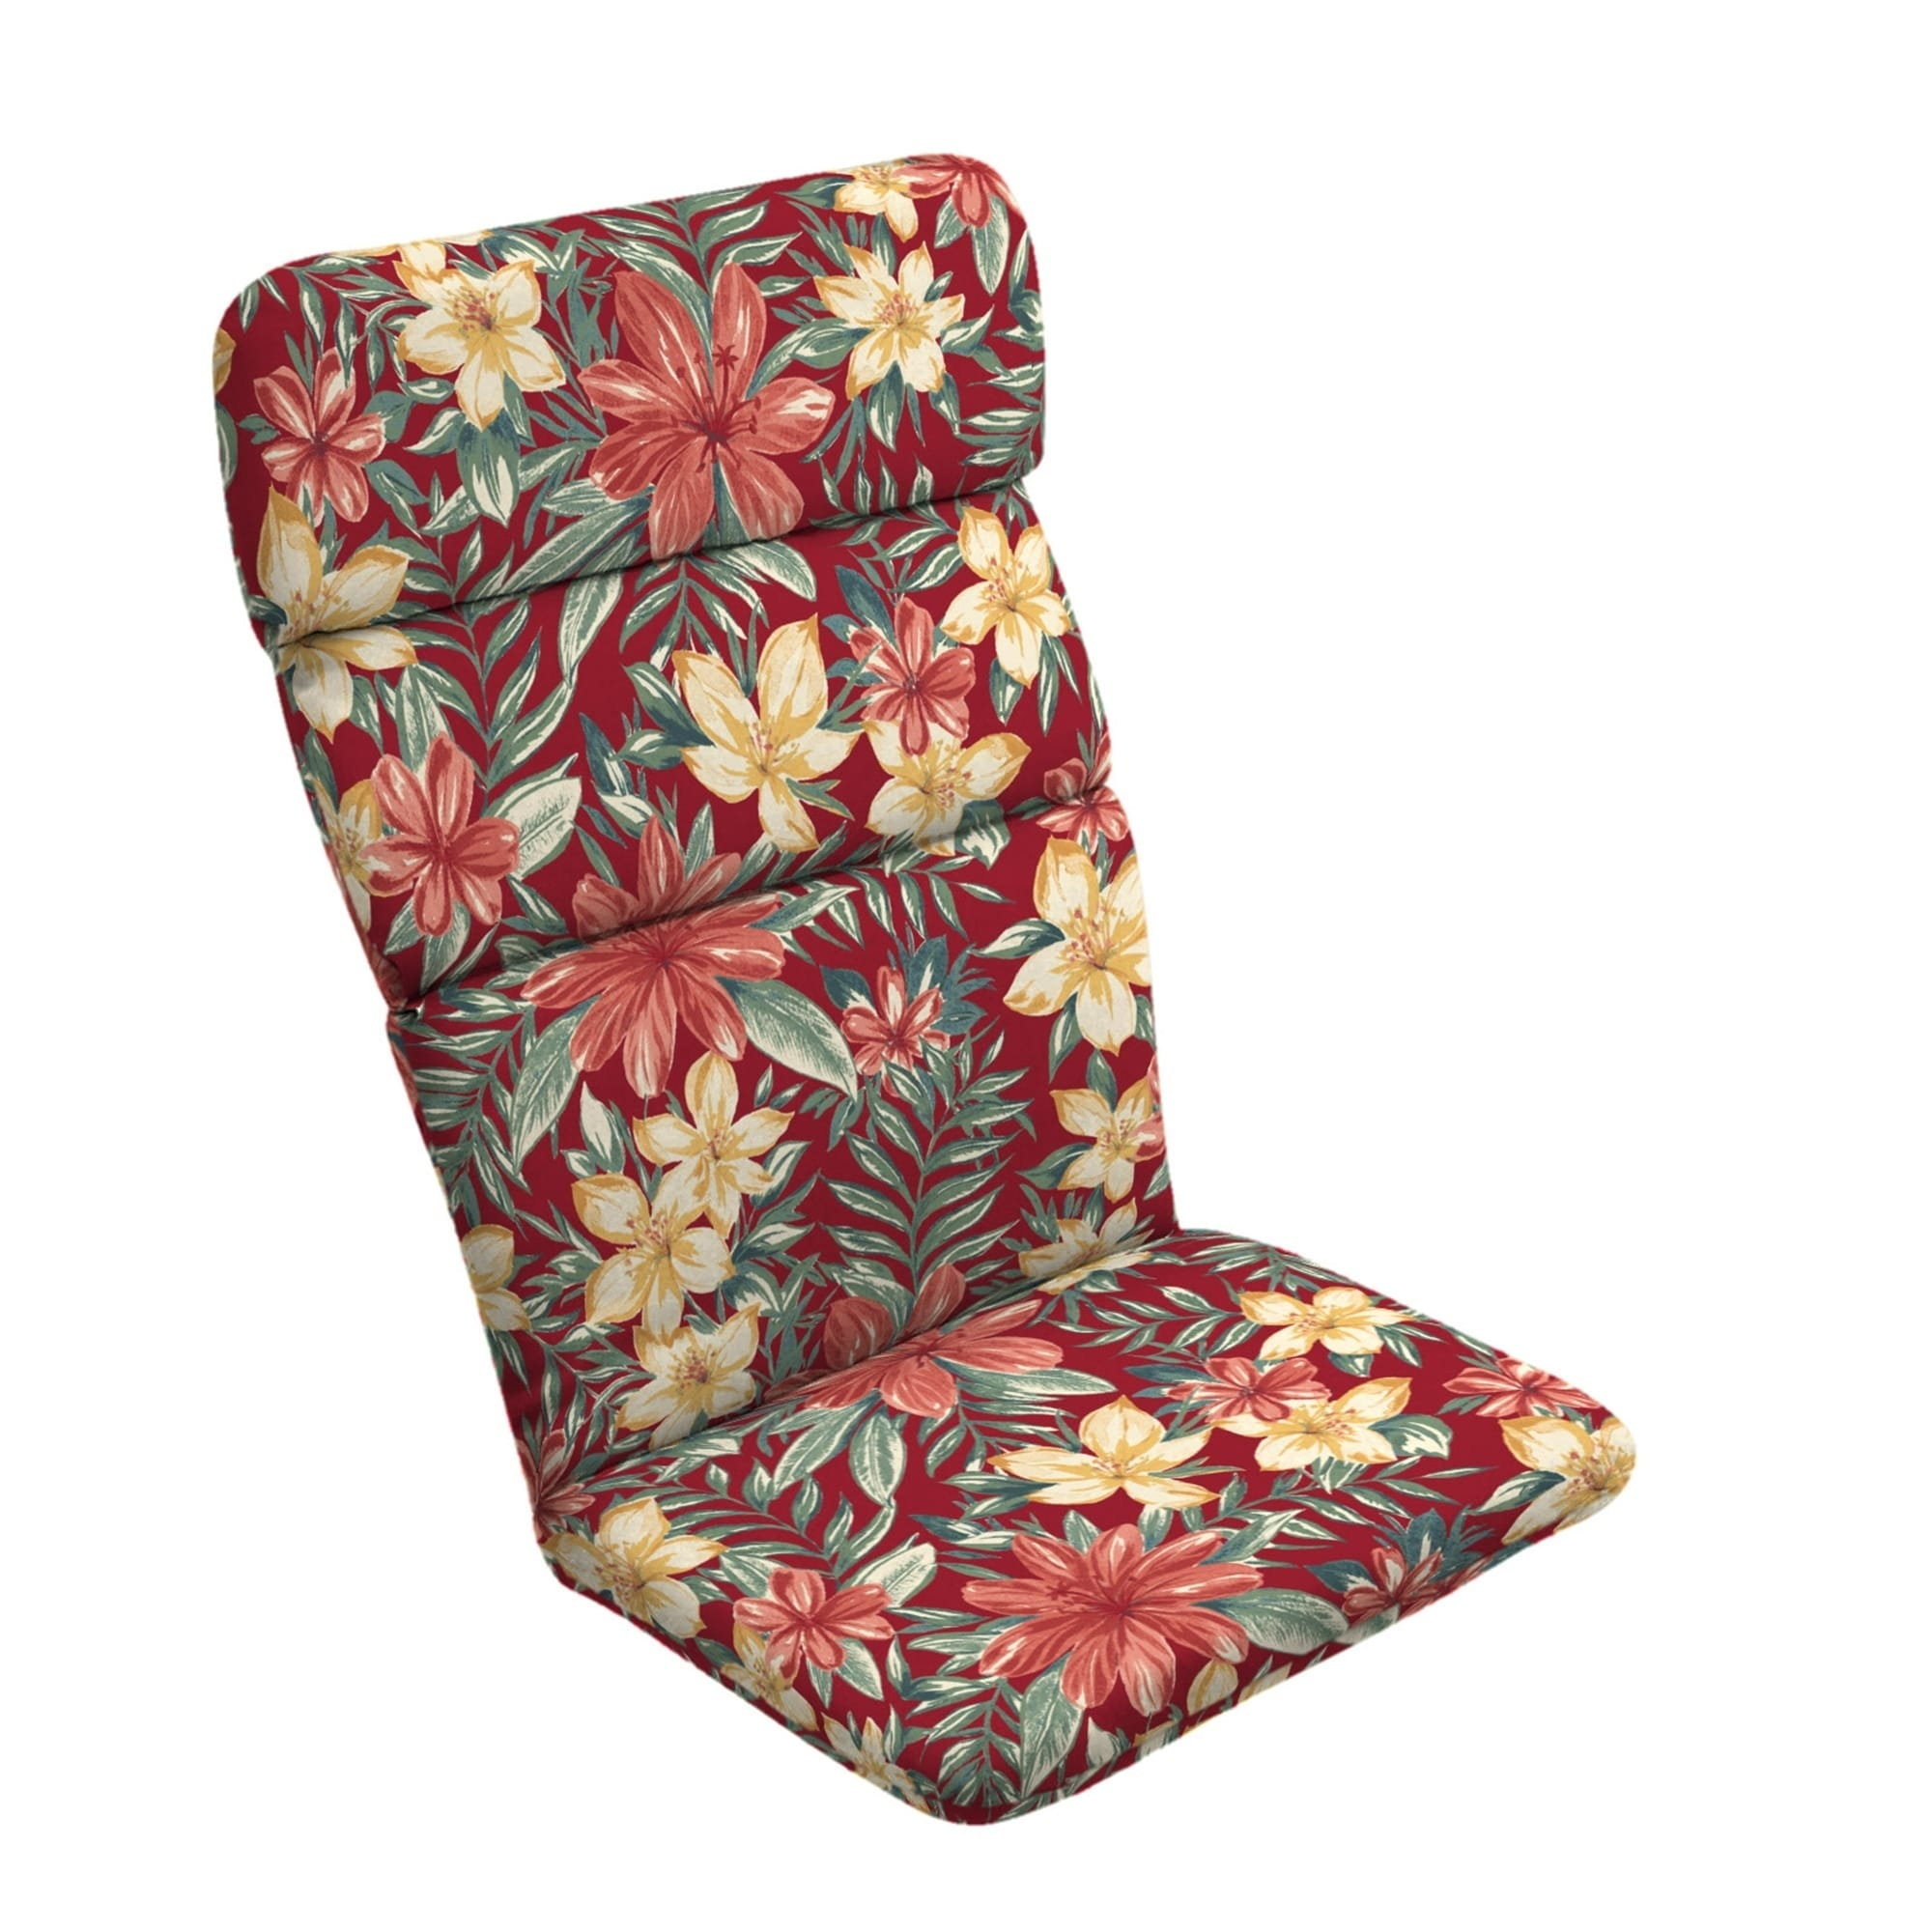 Arden Selections Ruby Clarissa Tropical Chaise Cushion Red